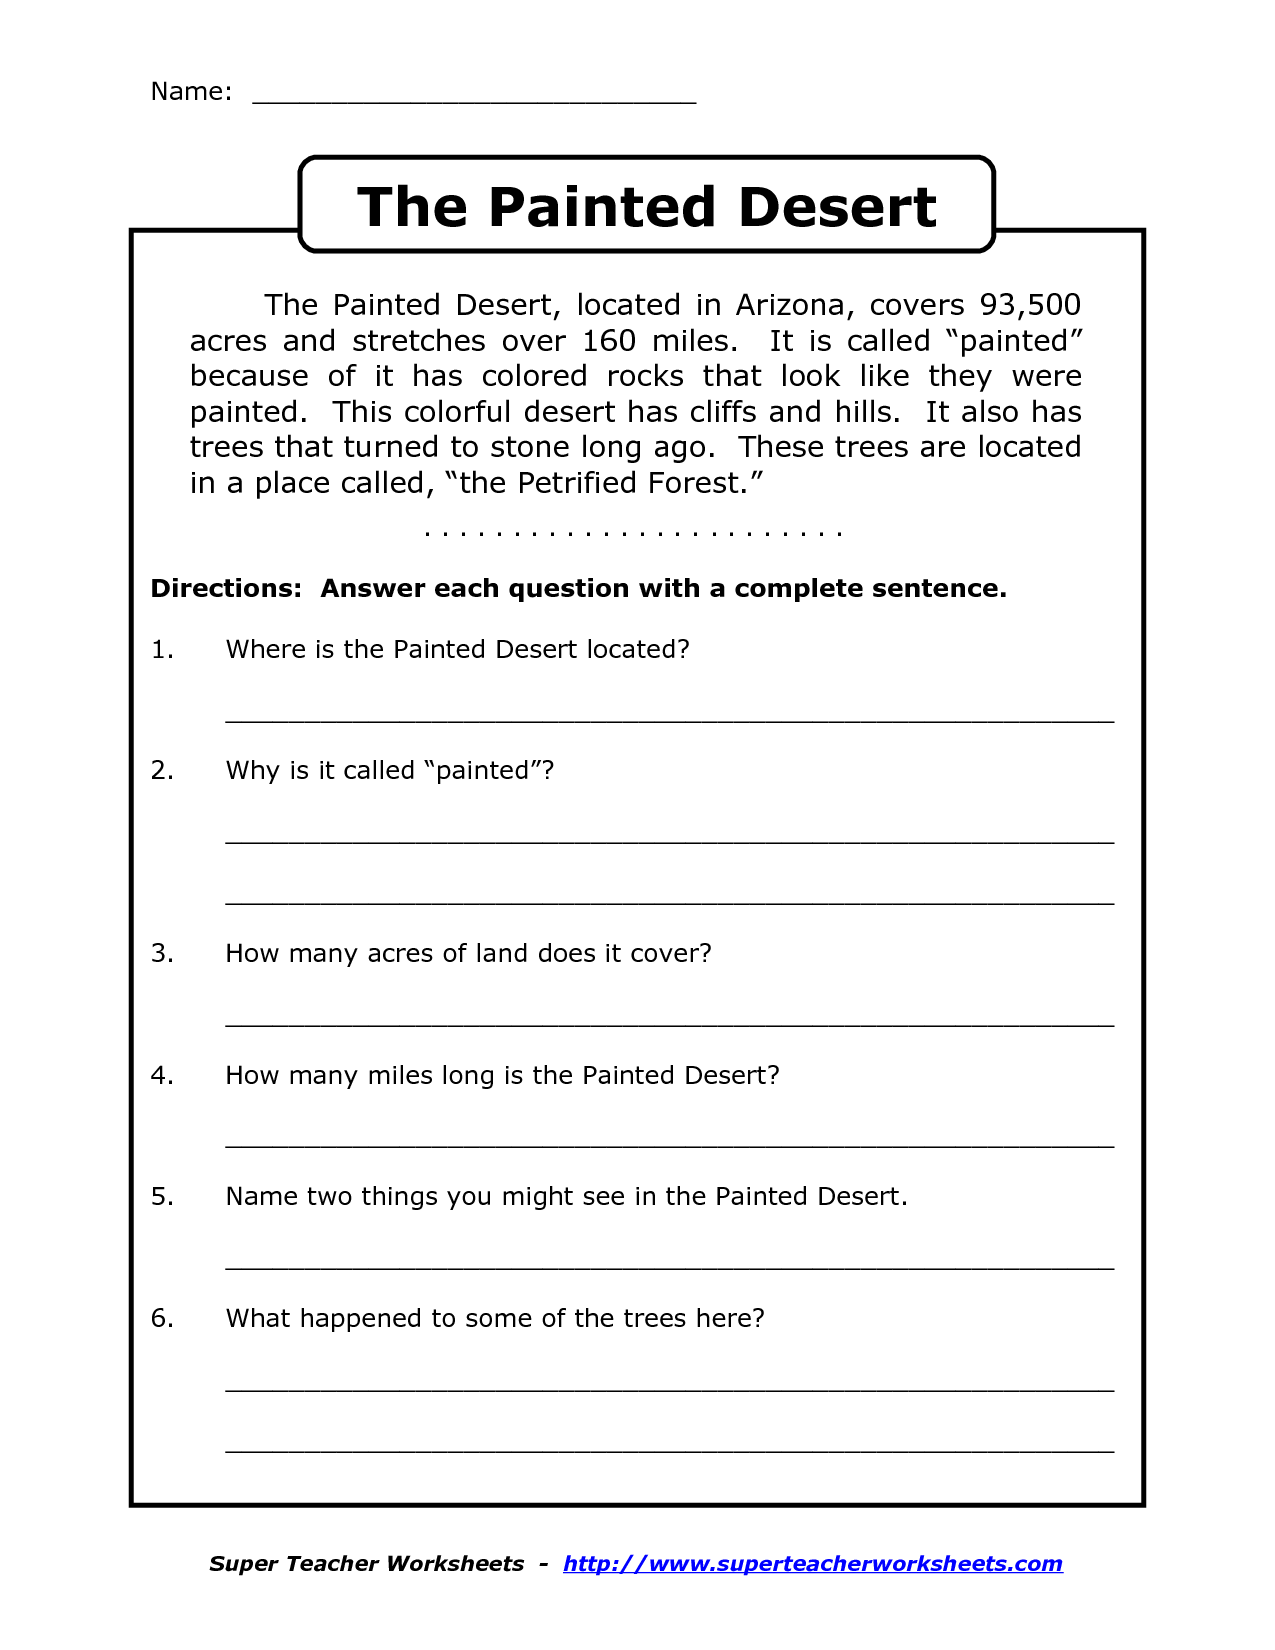 Printables Free Comprehension Worksheets For Grade 2 worksheets free printable comprehension for grade 3 7